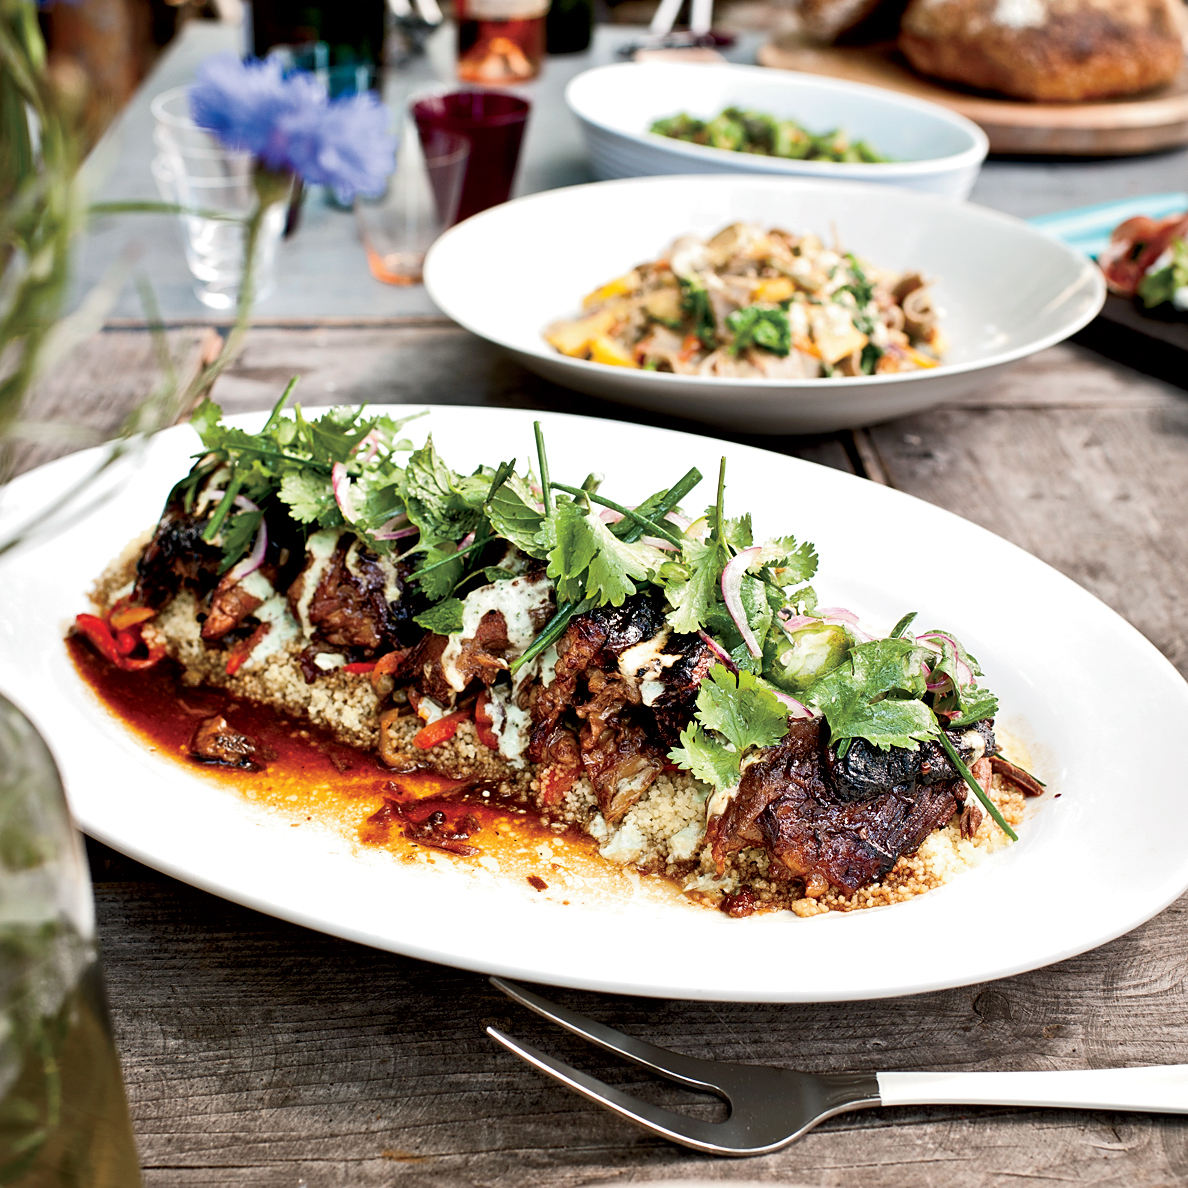 Slow-Cooked Leg of Lamb with Spiced Yogurt and Herbs